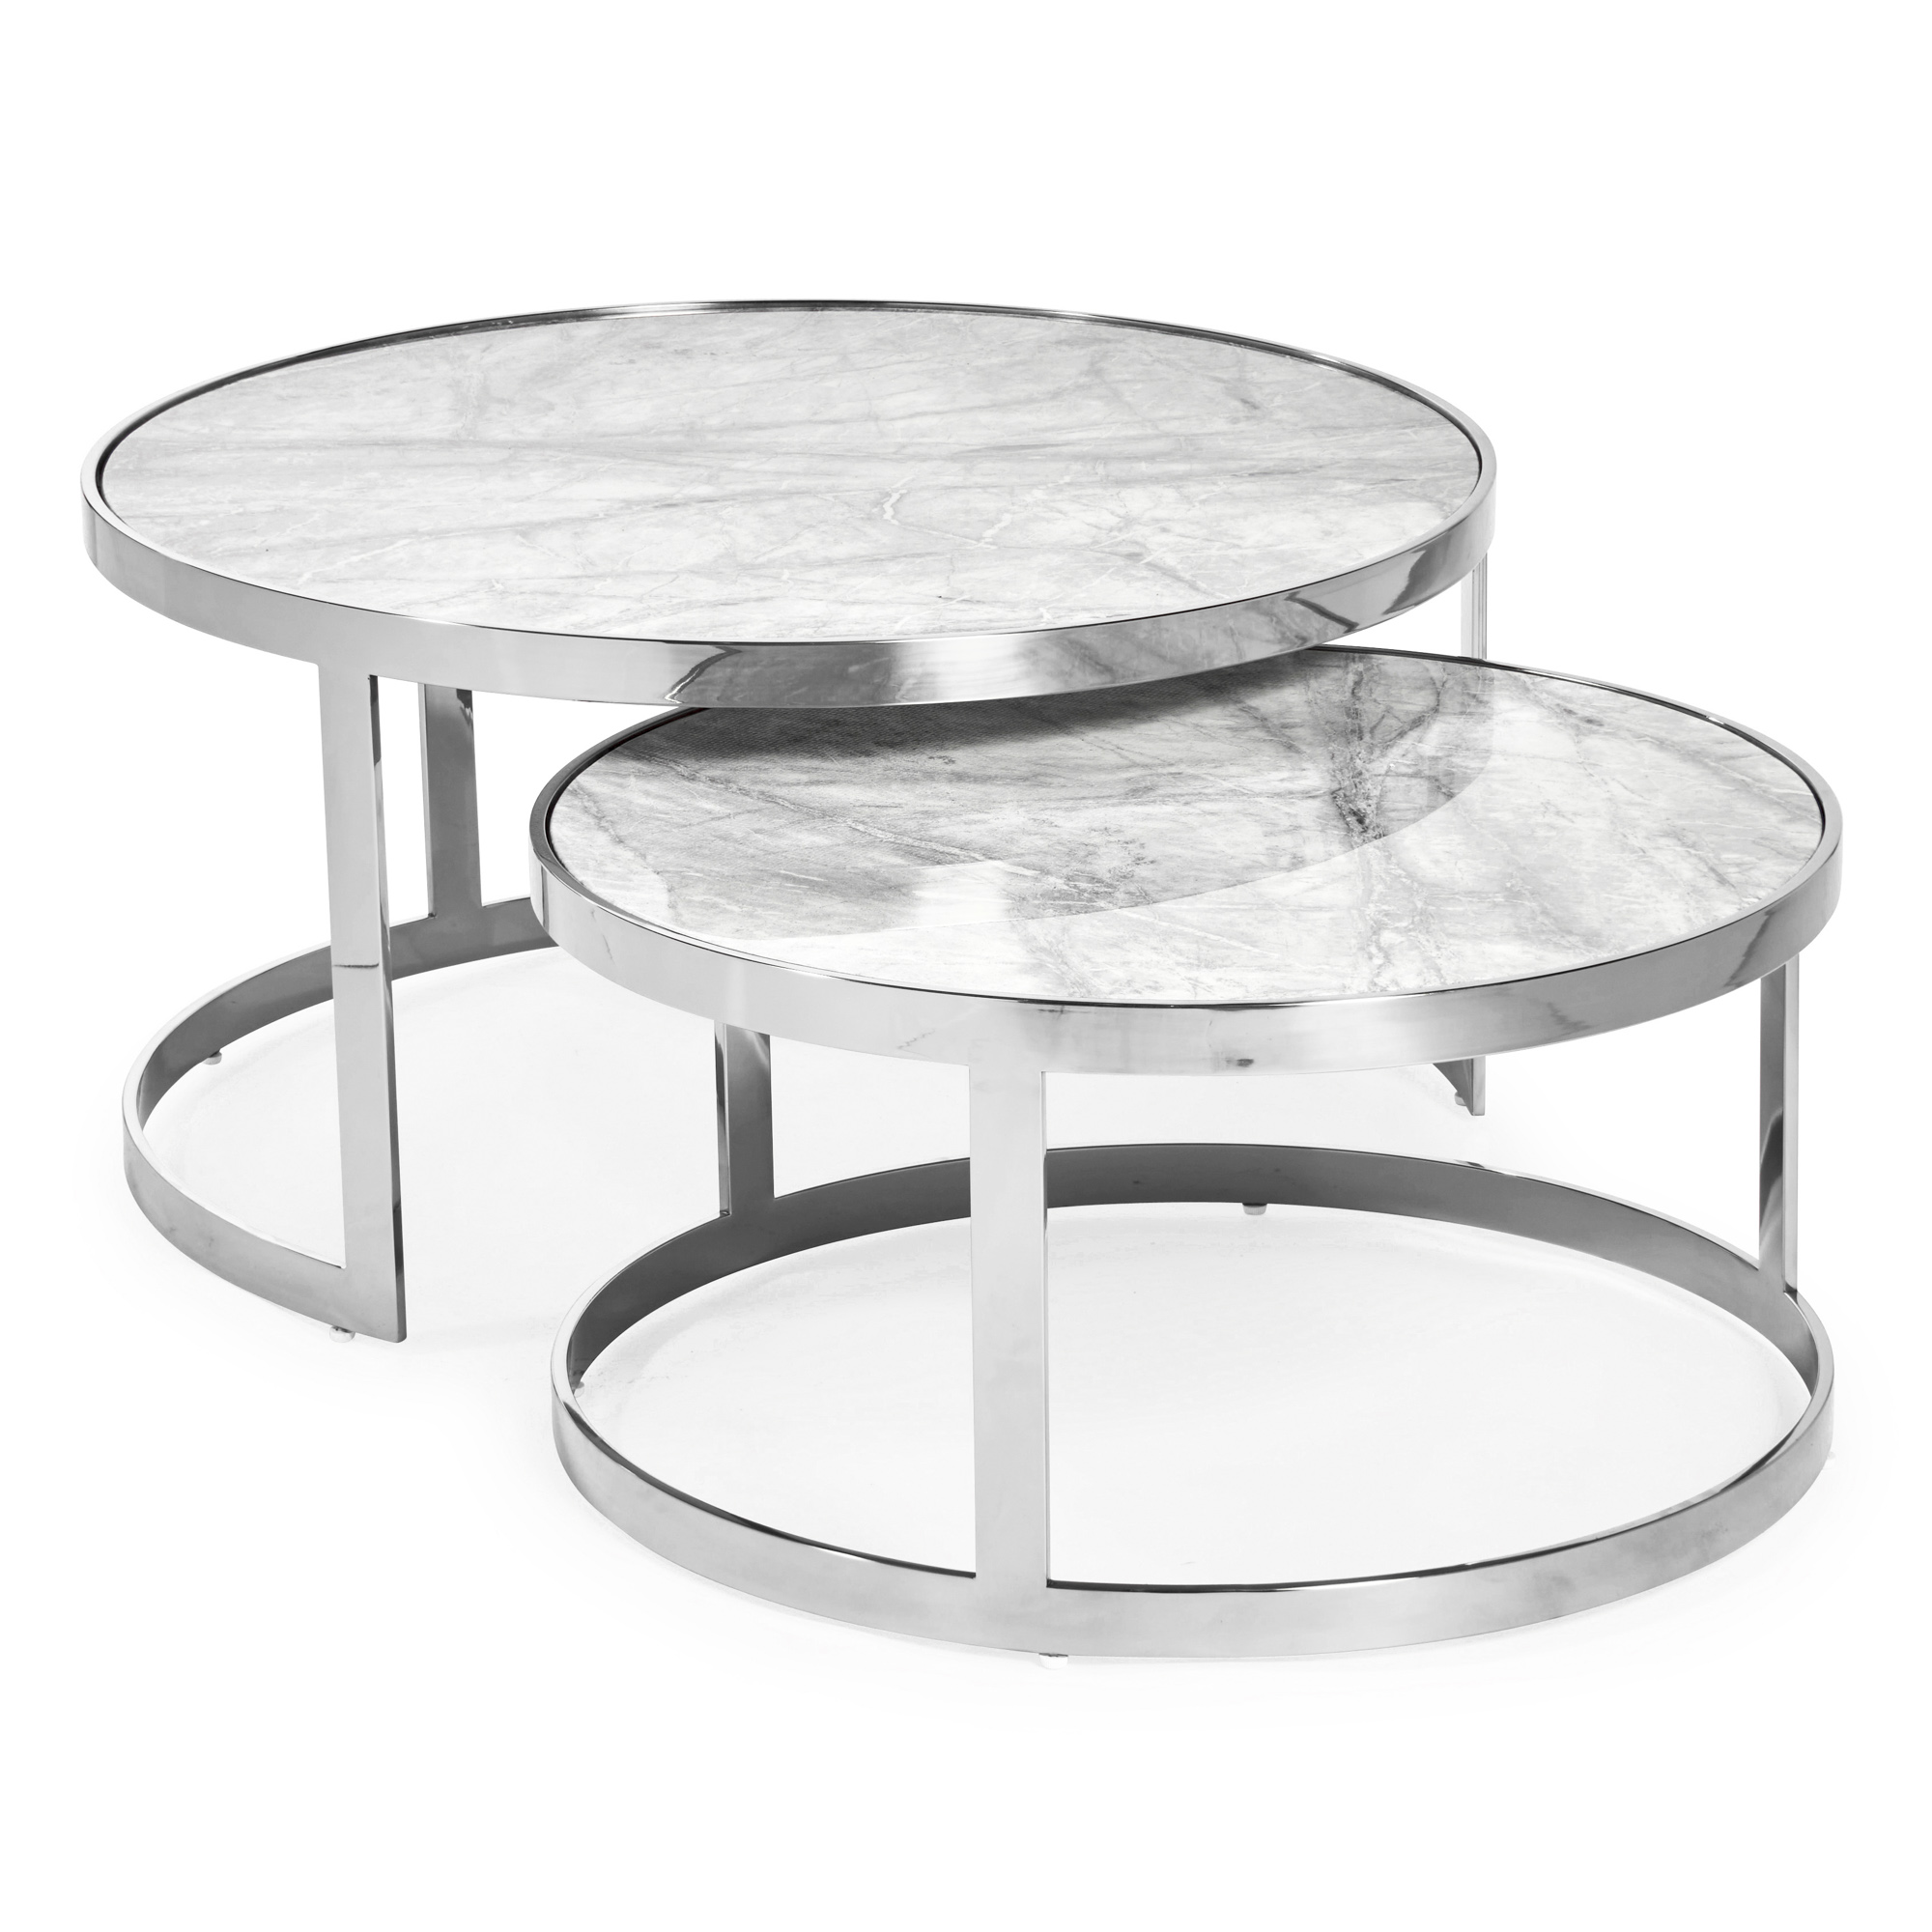 Florence Stainless Steel Framed Set of 2 Circular Coffee Nest Tables – Grey Marble